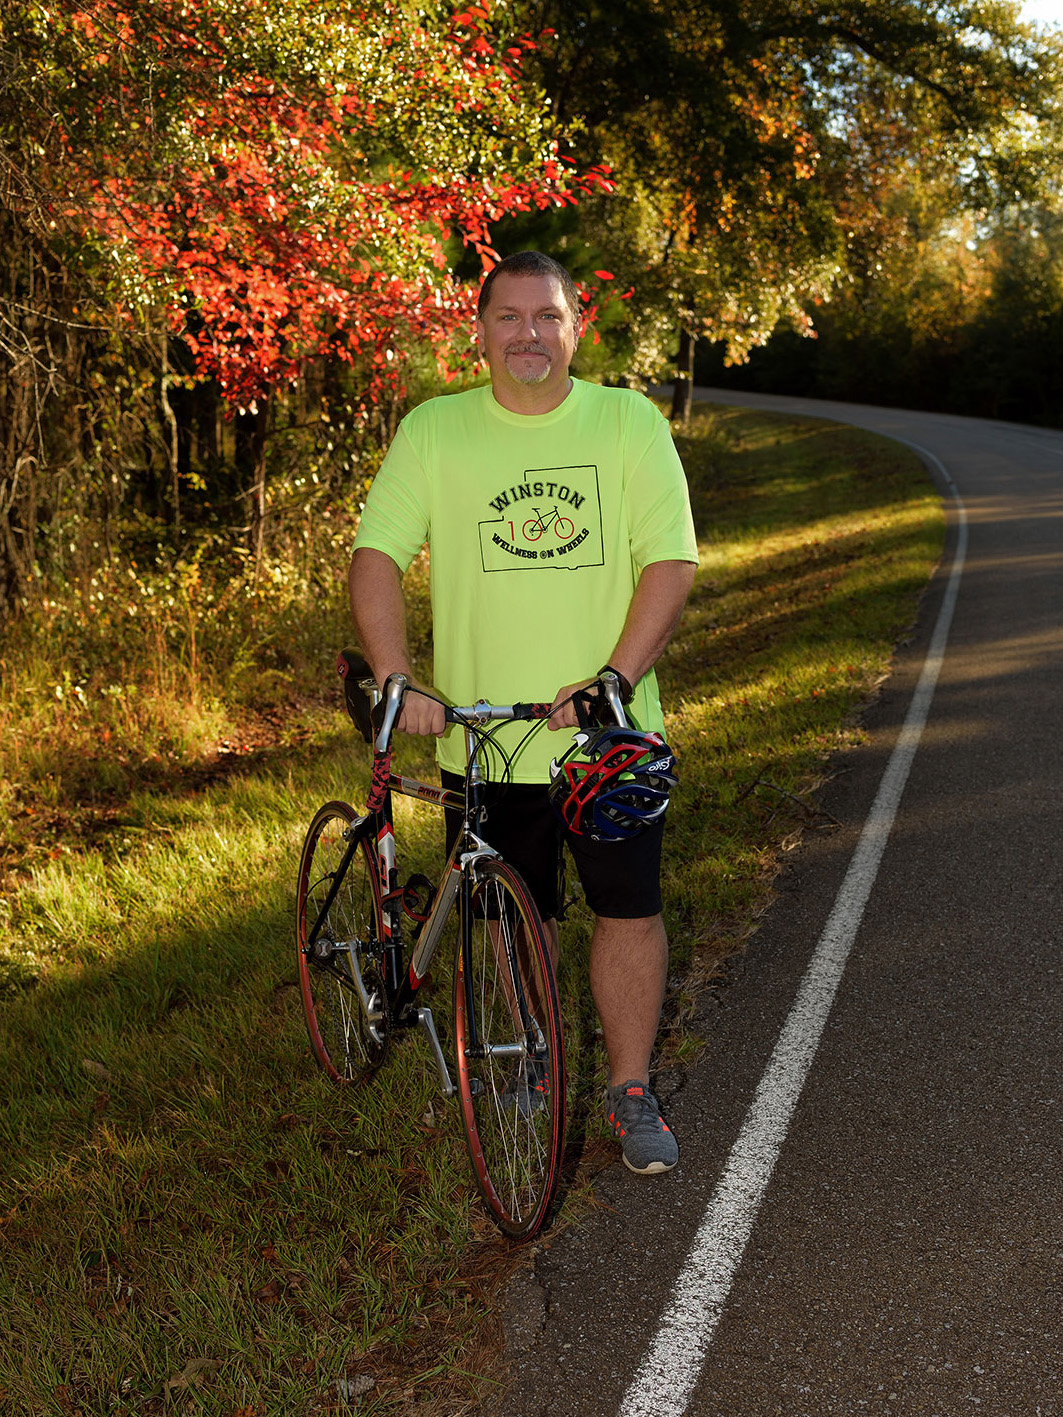 A man wearing a fluorescent green shirt stands holding the handlbars of a black and red bike on the side of a road.